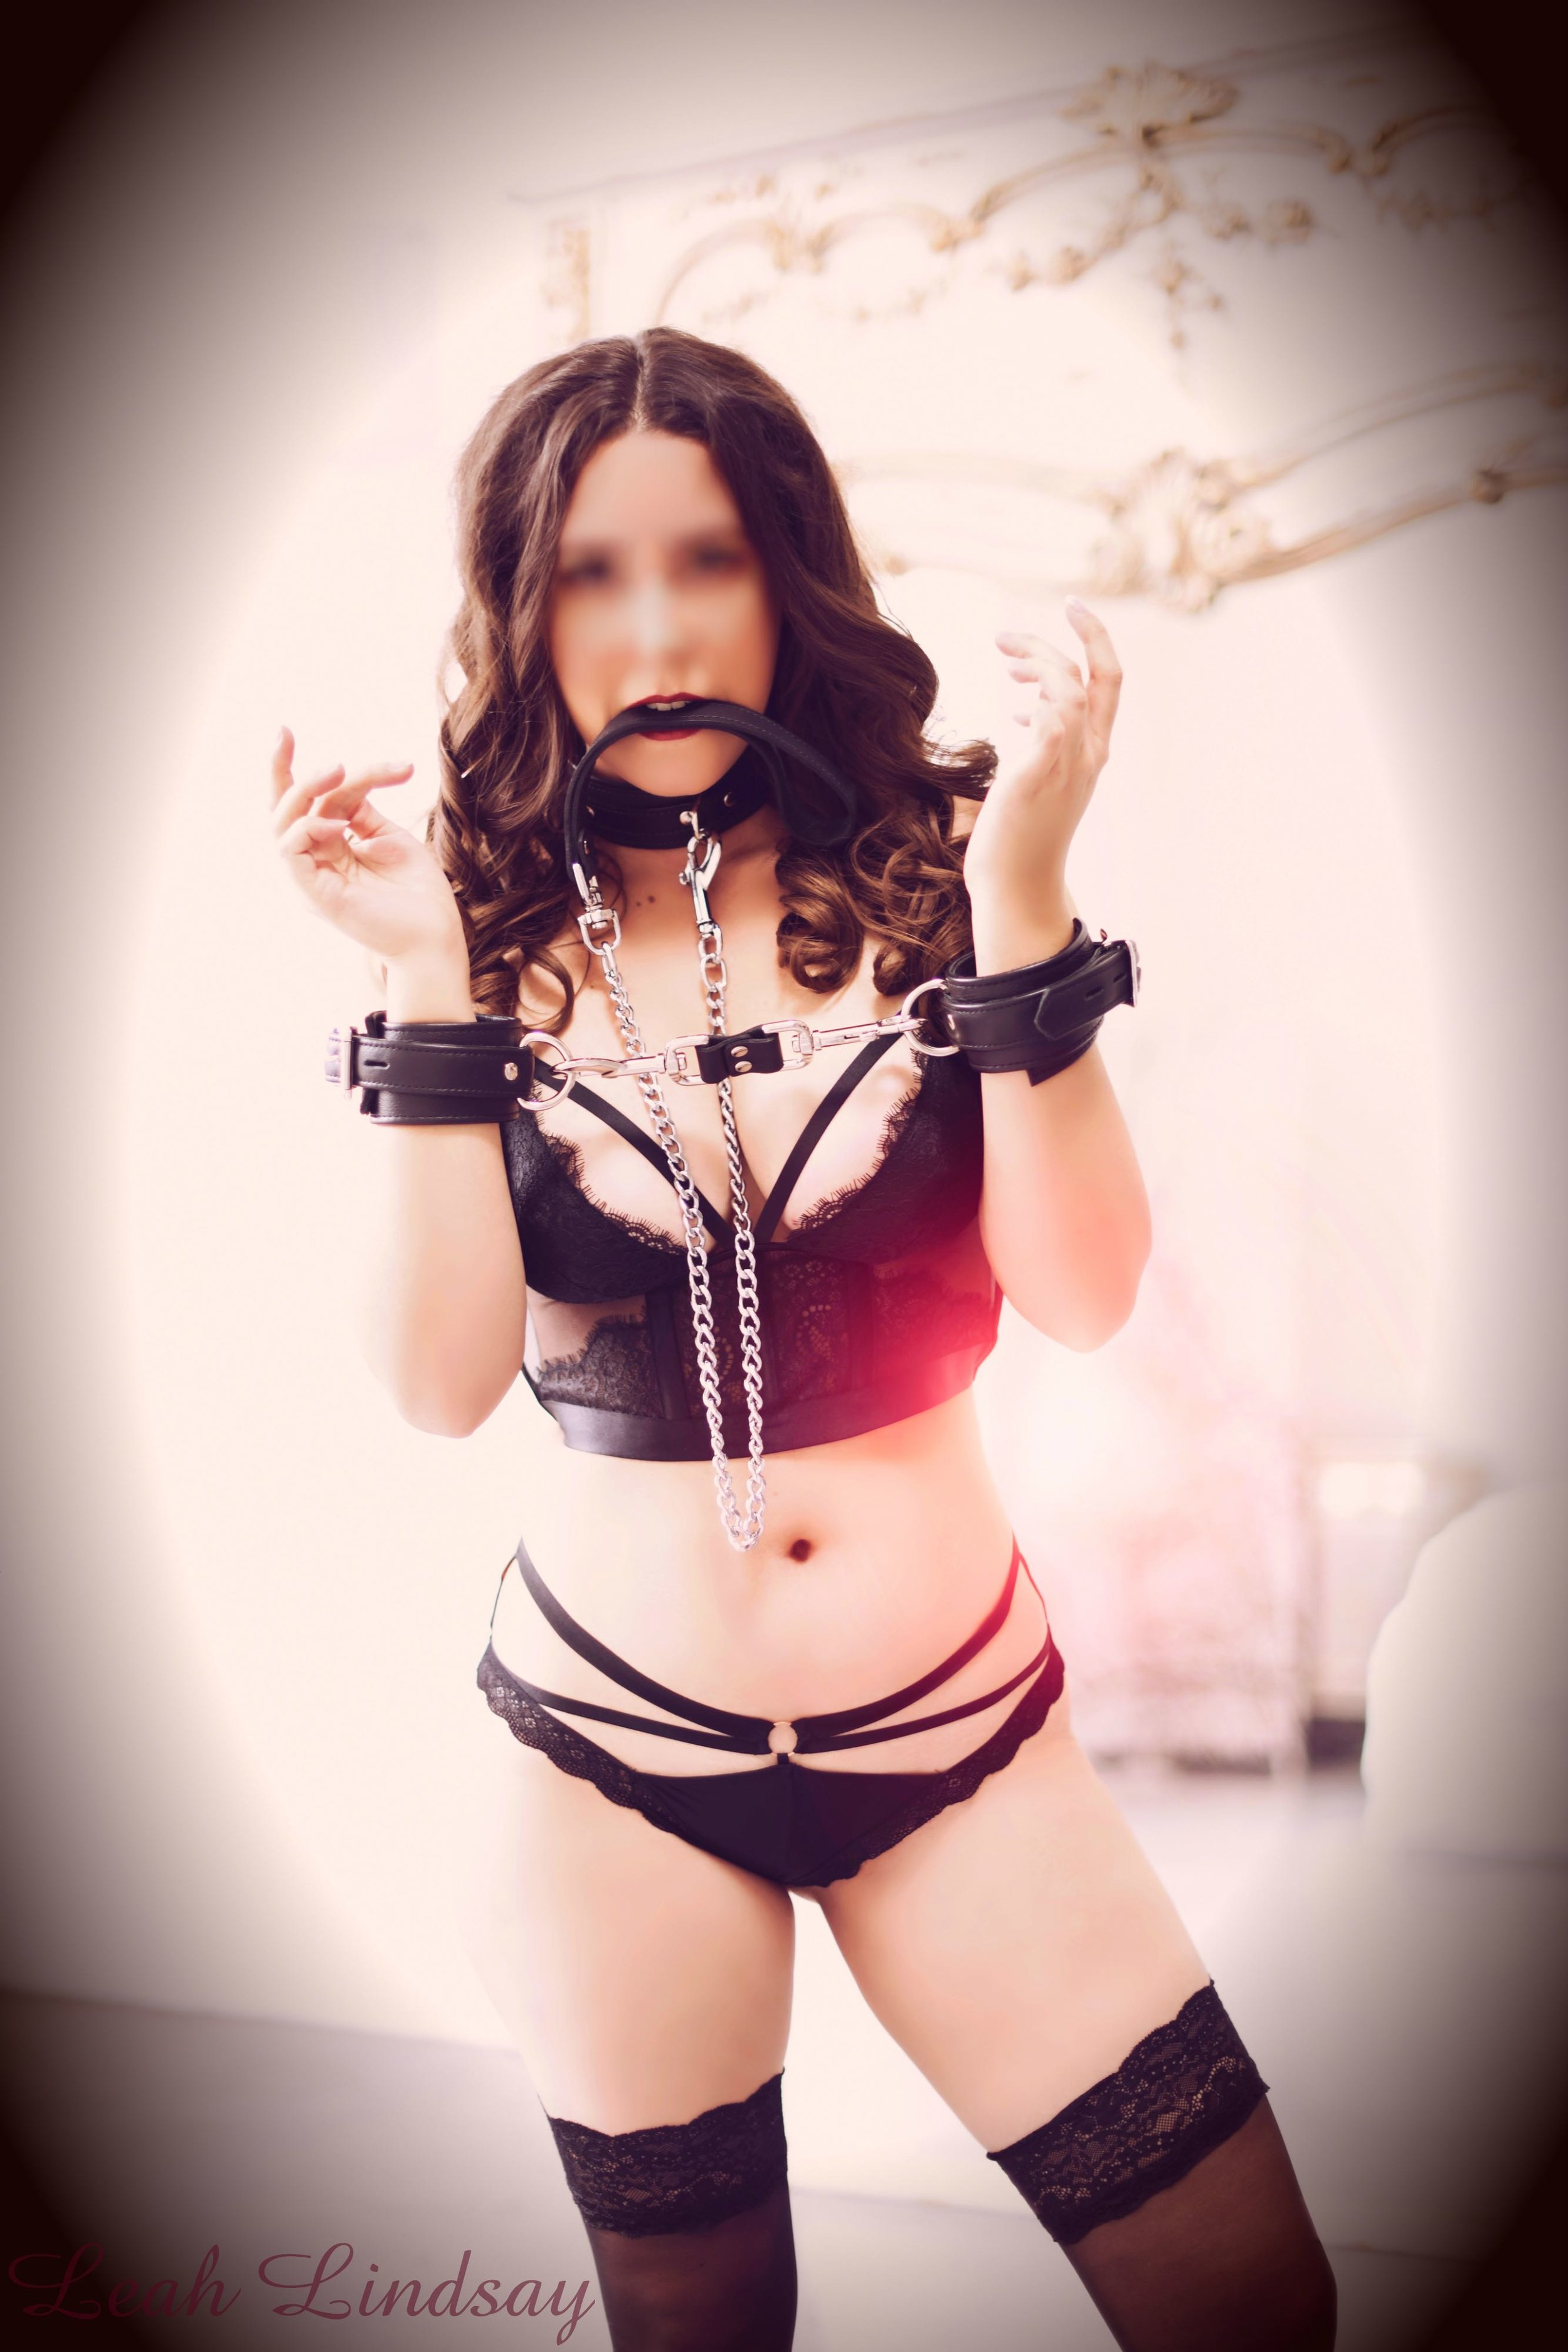 Leah Lindsay - Authentic Brunette Bombshell SF Bay Area